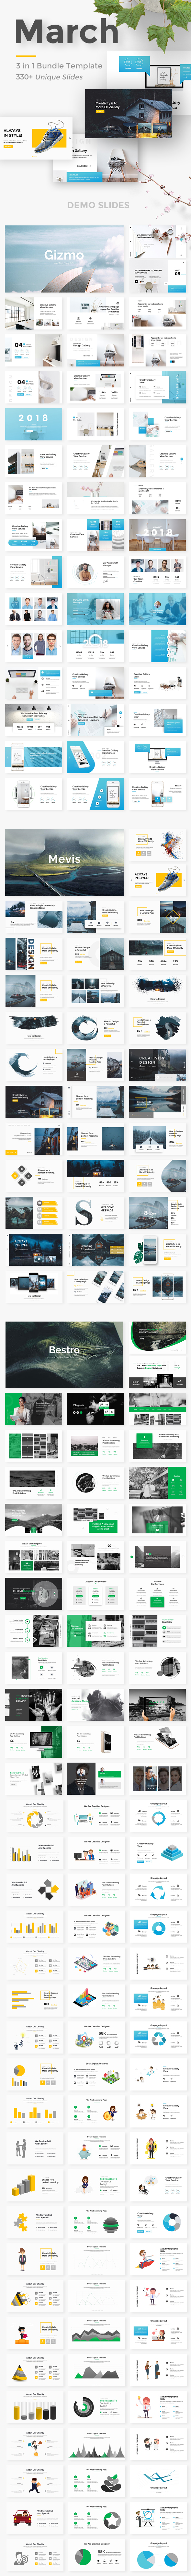 3 in 1 March Bundle Creative  Keynote Template - Creative Keynote Templates